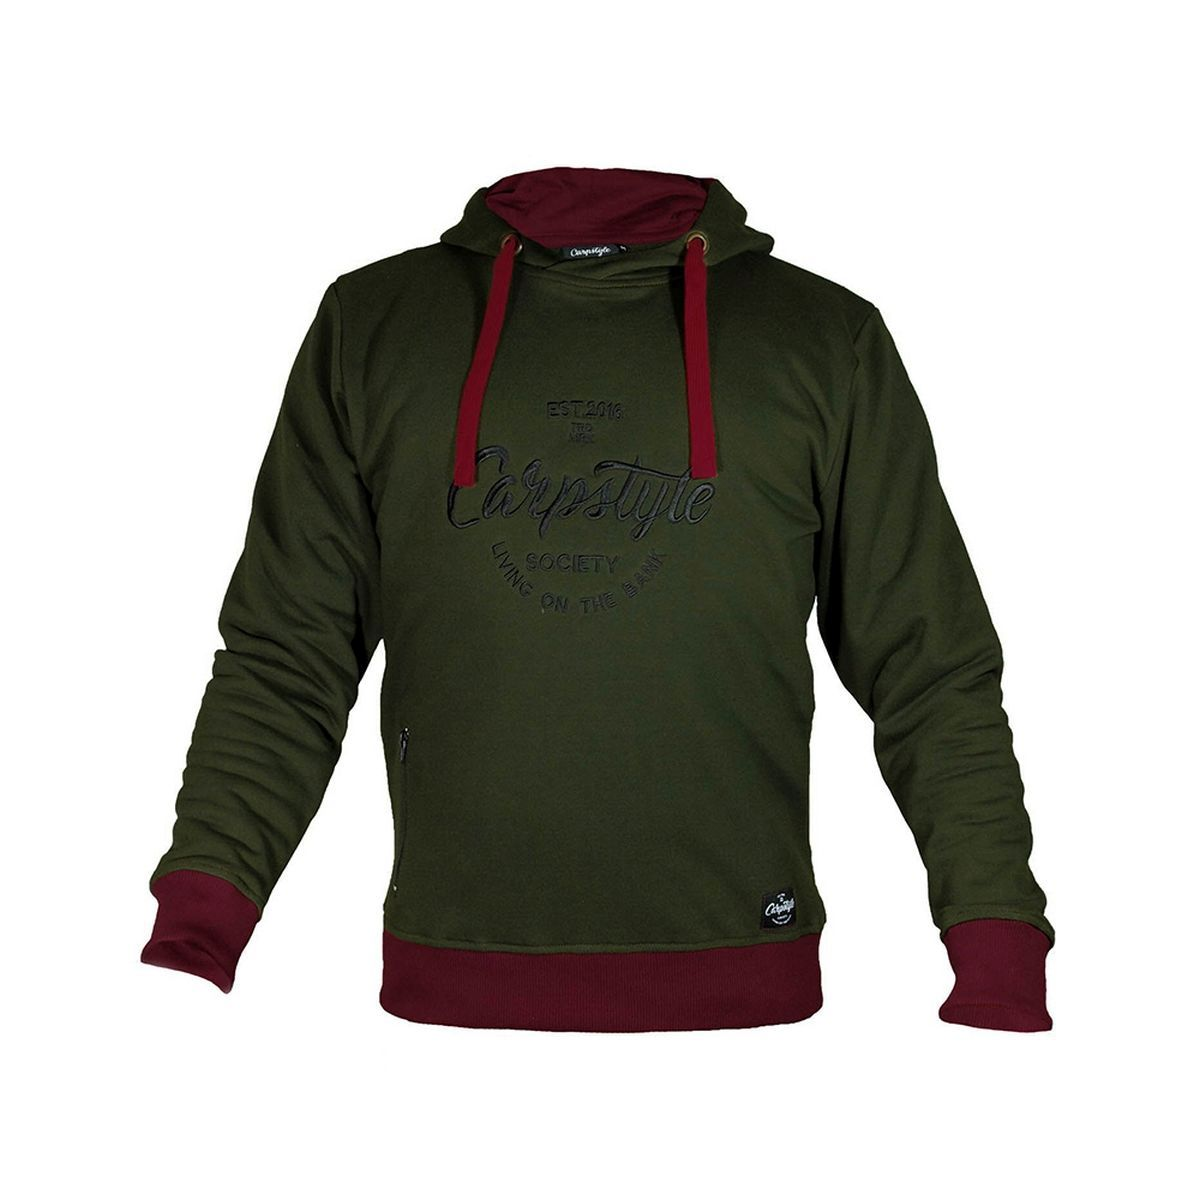 CARPSTYLE Green Forest Hoodie - S